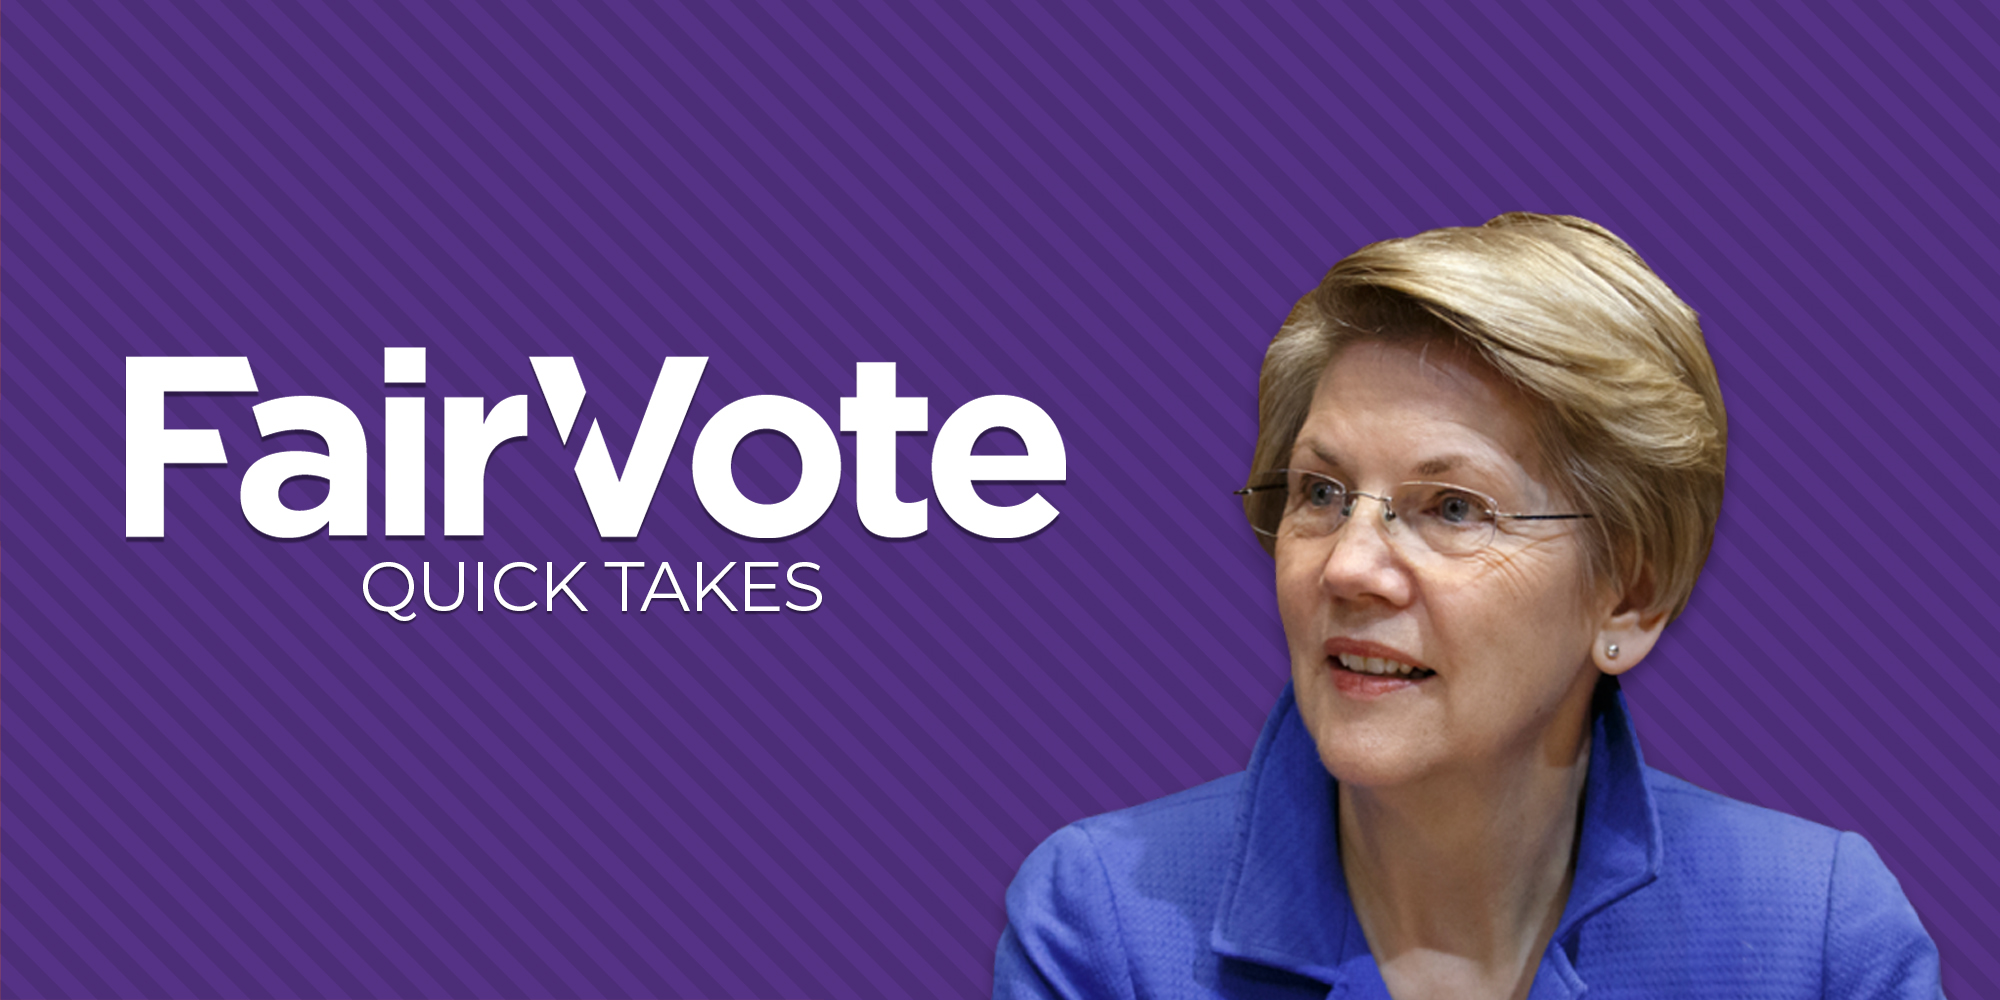 Elizabeth Warren Endorses Ranked Choice Voting